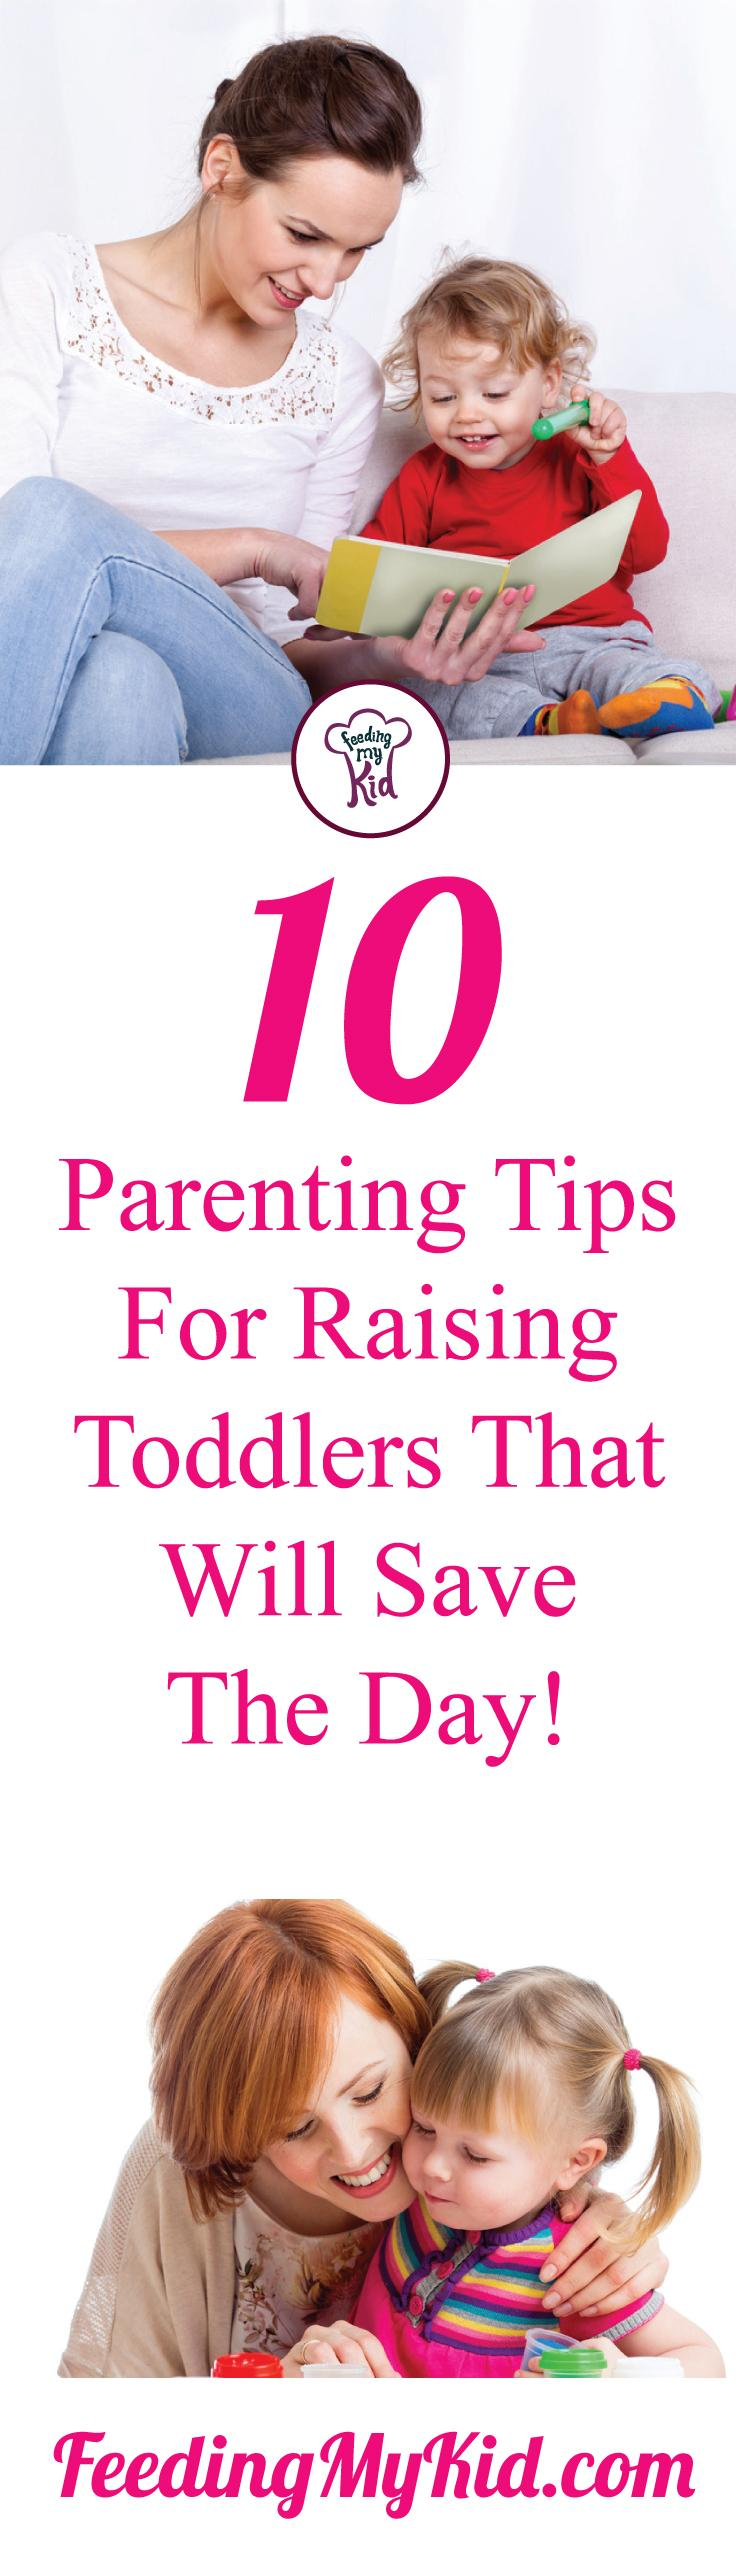 Want some great parenting tips? Check out this great parenting tips video to help you raise your toddlers! Feeding My Kid is a filled with all the information you need about how to raise your kids, from healthy tips to nutritious recipes. #FeedingMyKid #parentingtips #toddlers